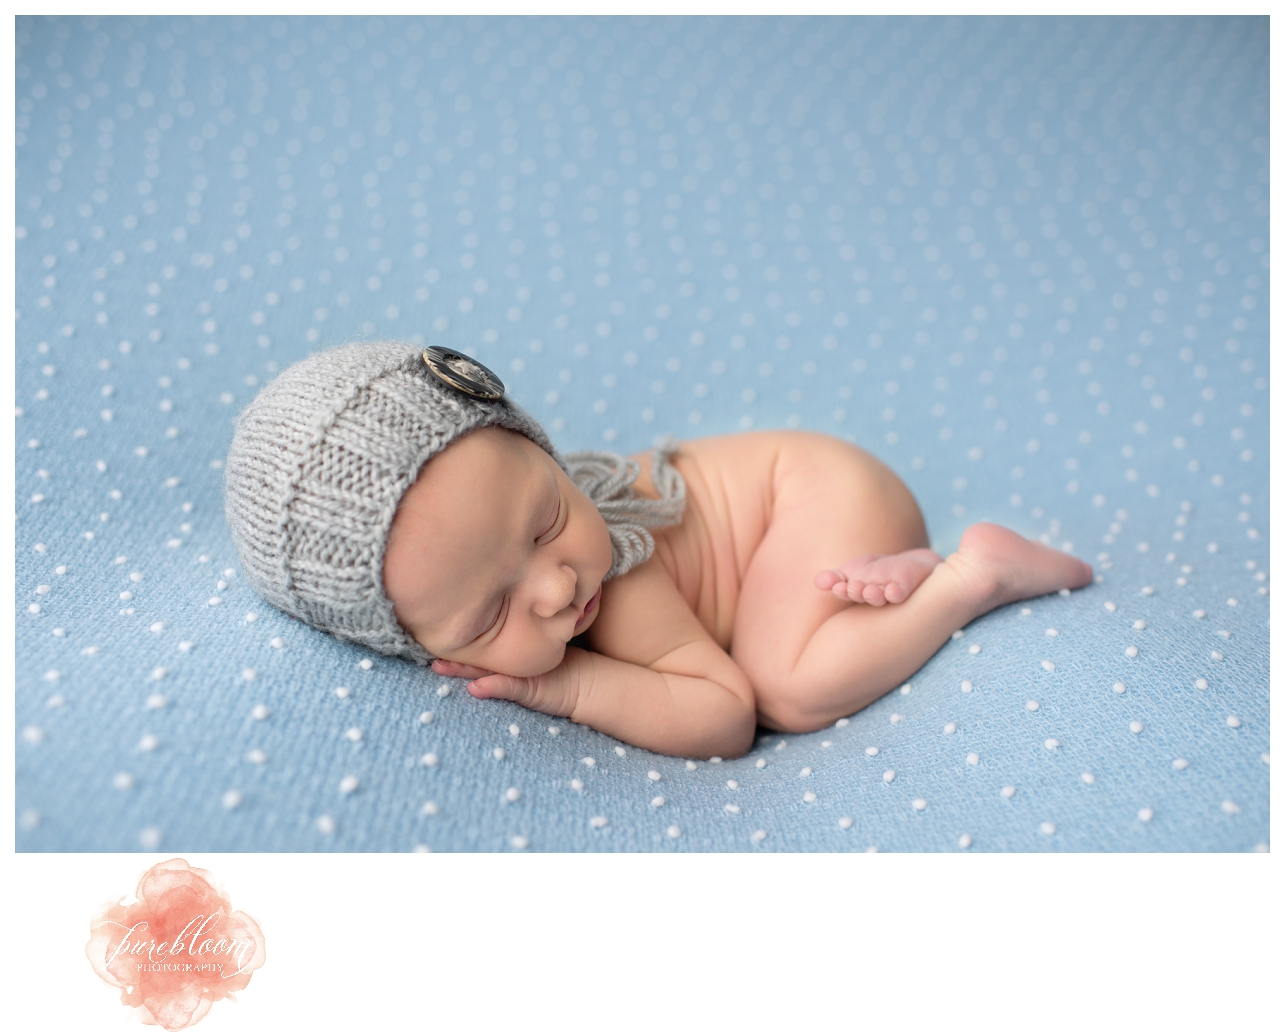 Tampa Artistic Newborn Photographer | Baby Charlie | Pure Bloom Photography